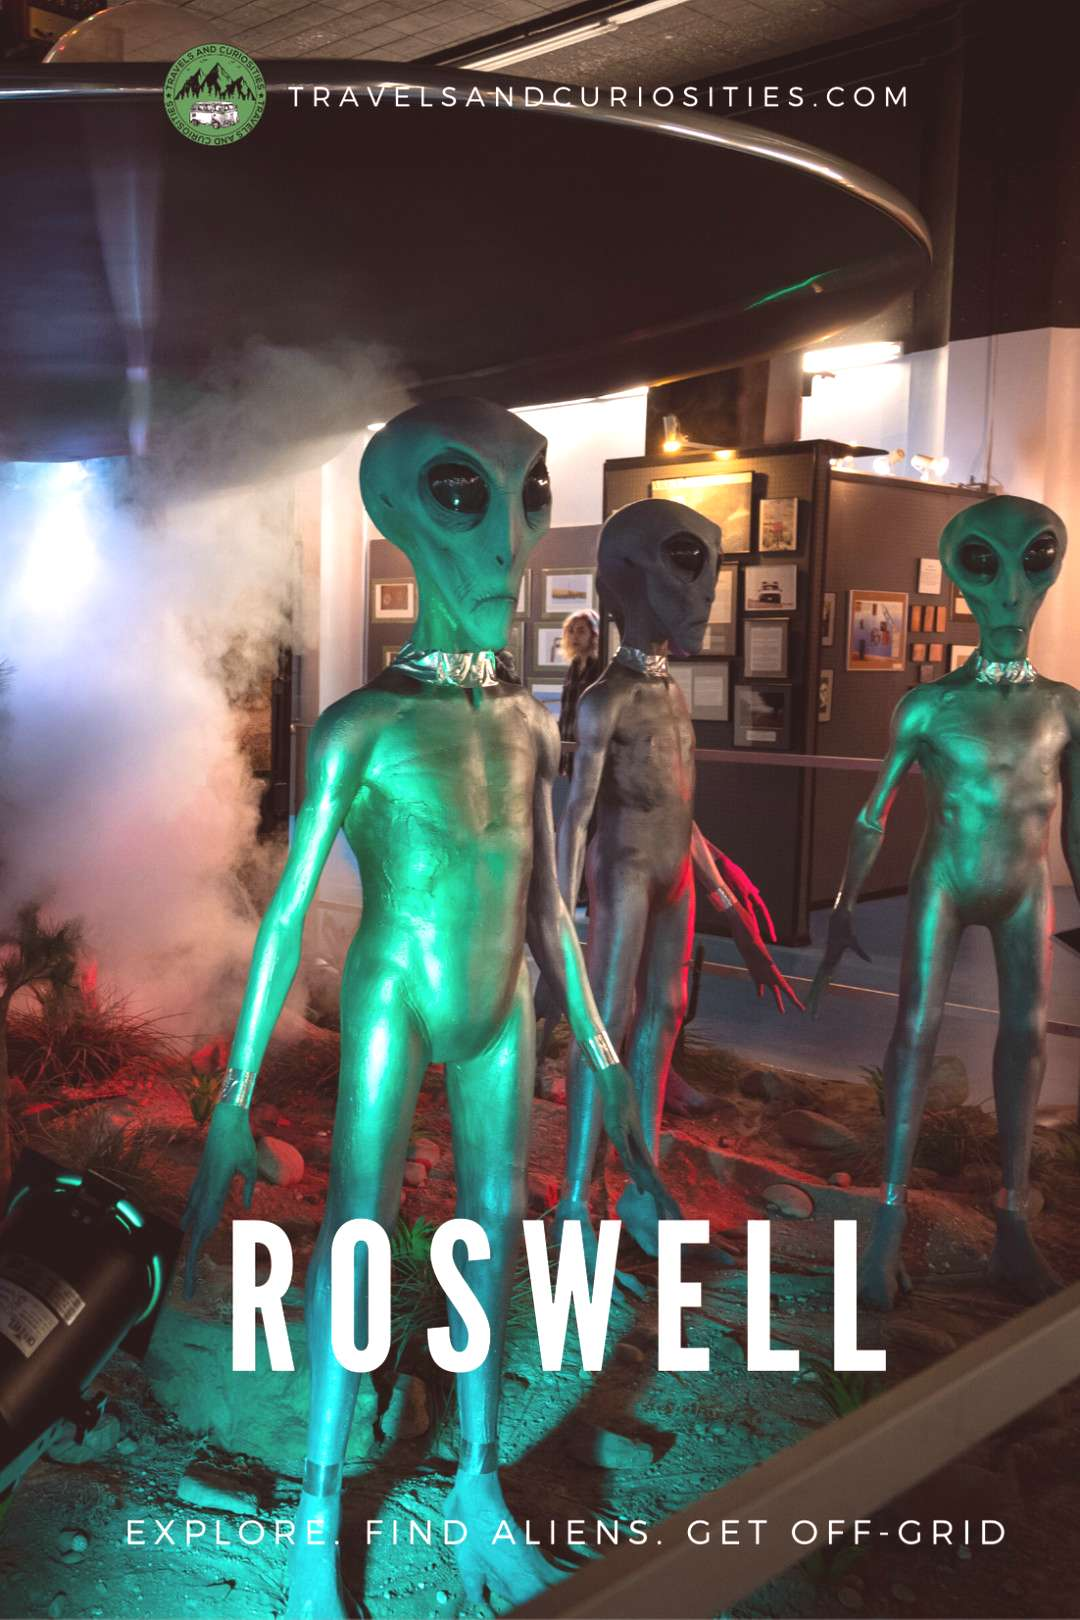 Roswell UFO Museum and Research Center — Travels and Curiosities Explore the alien lore of Roswel